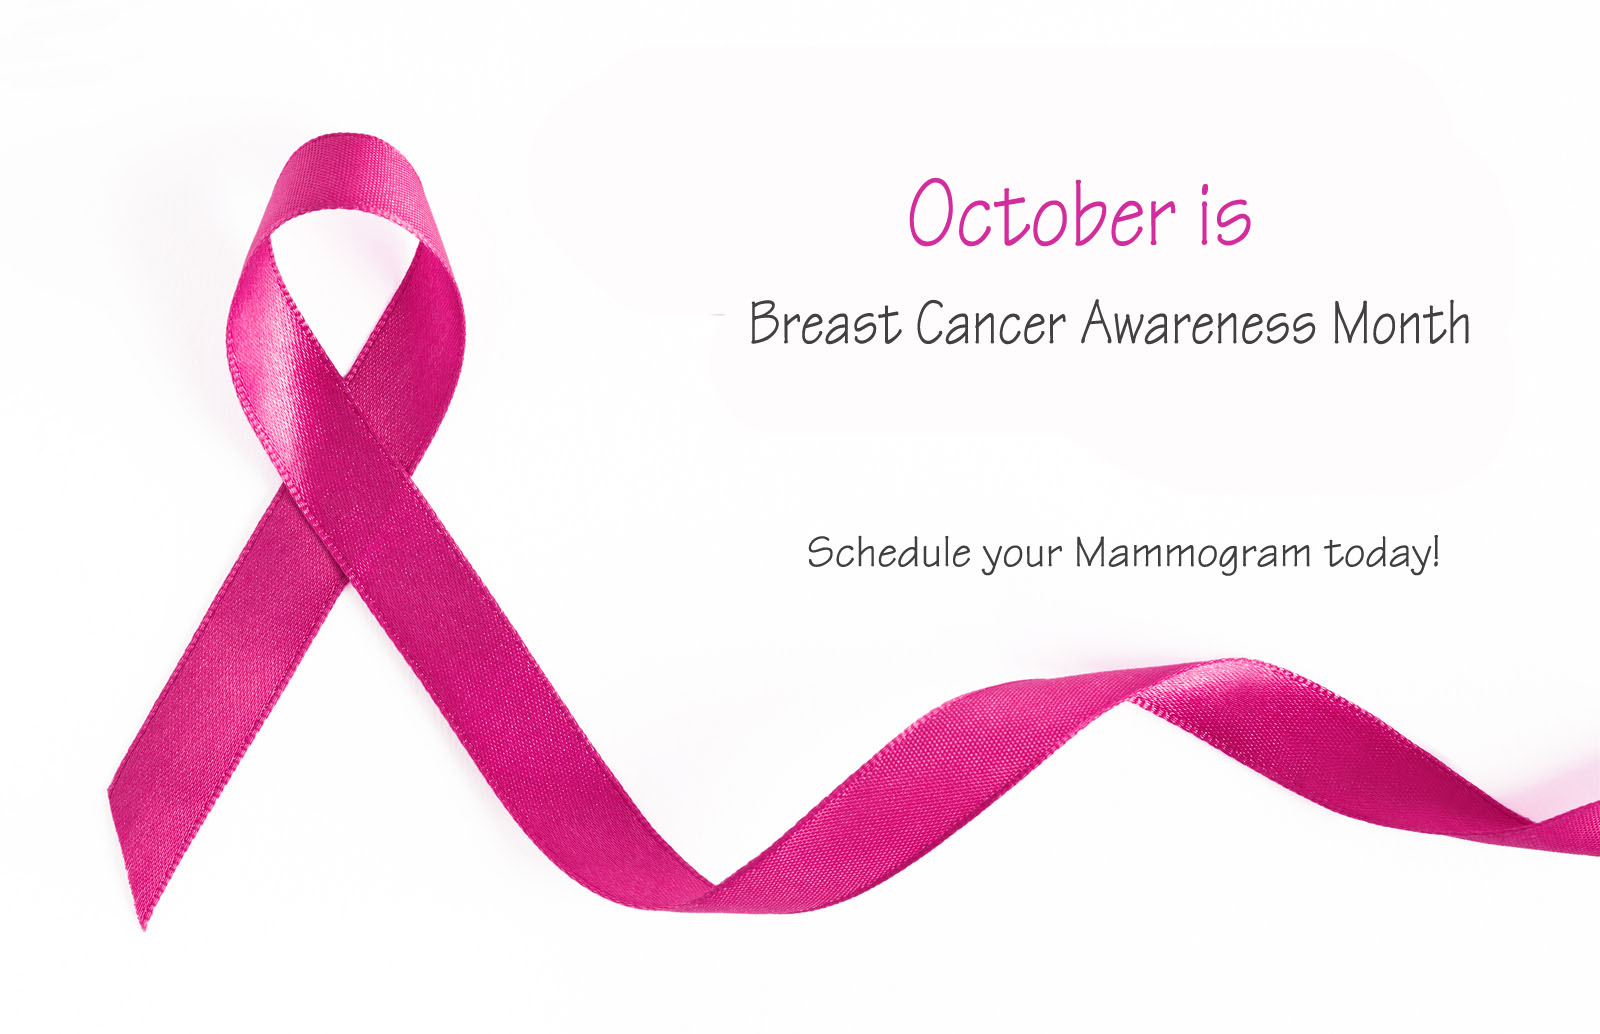 the importance of early detection and treatment to survive breast cancer Breast cancer survival rates in women  there are many factors that affect the survival rate for breast cancer in women including the way the cancer was detected, the stage and grade of the cancer and the type of treatment.